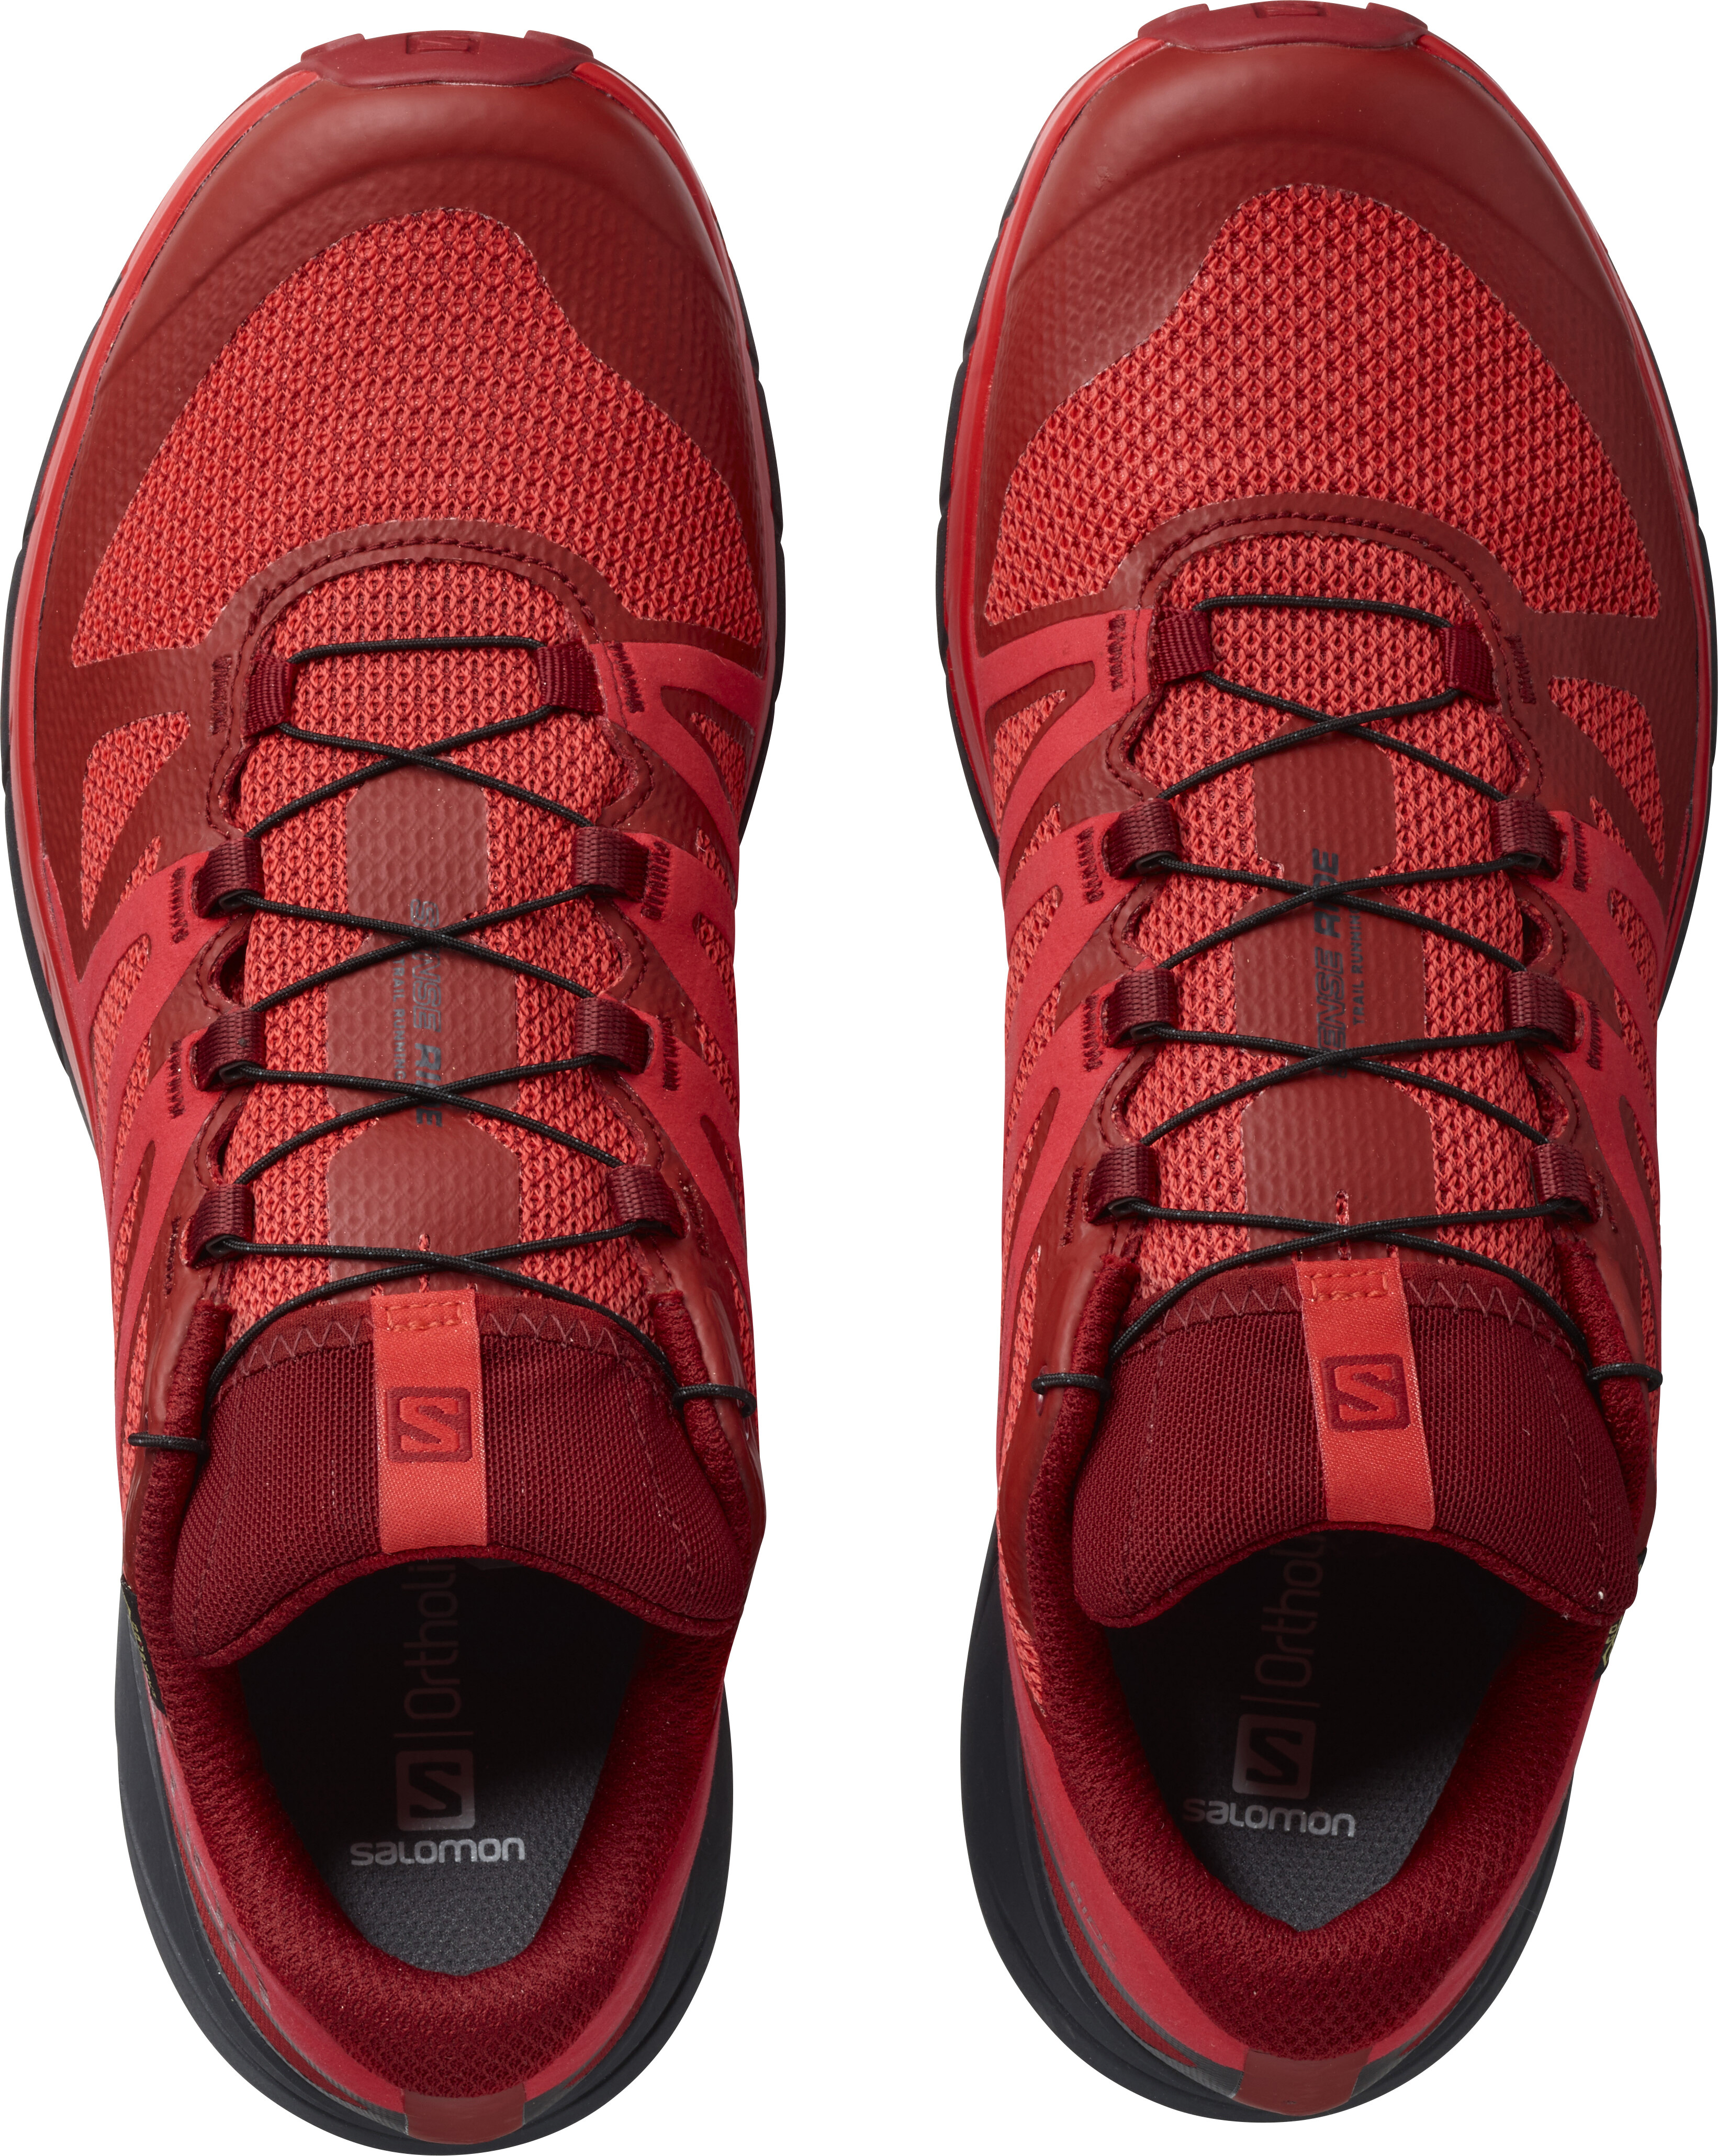 new arrivals da2a1 06561 Salomon Sense Ride GTX Invisible Fit - Chaussures running Homme - rouge